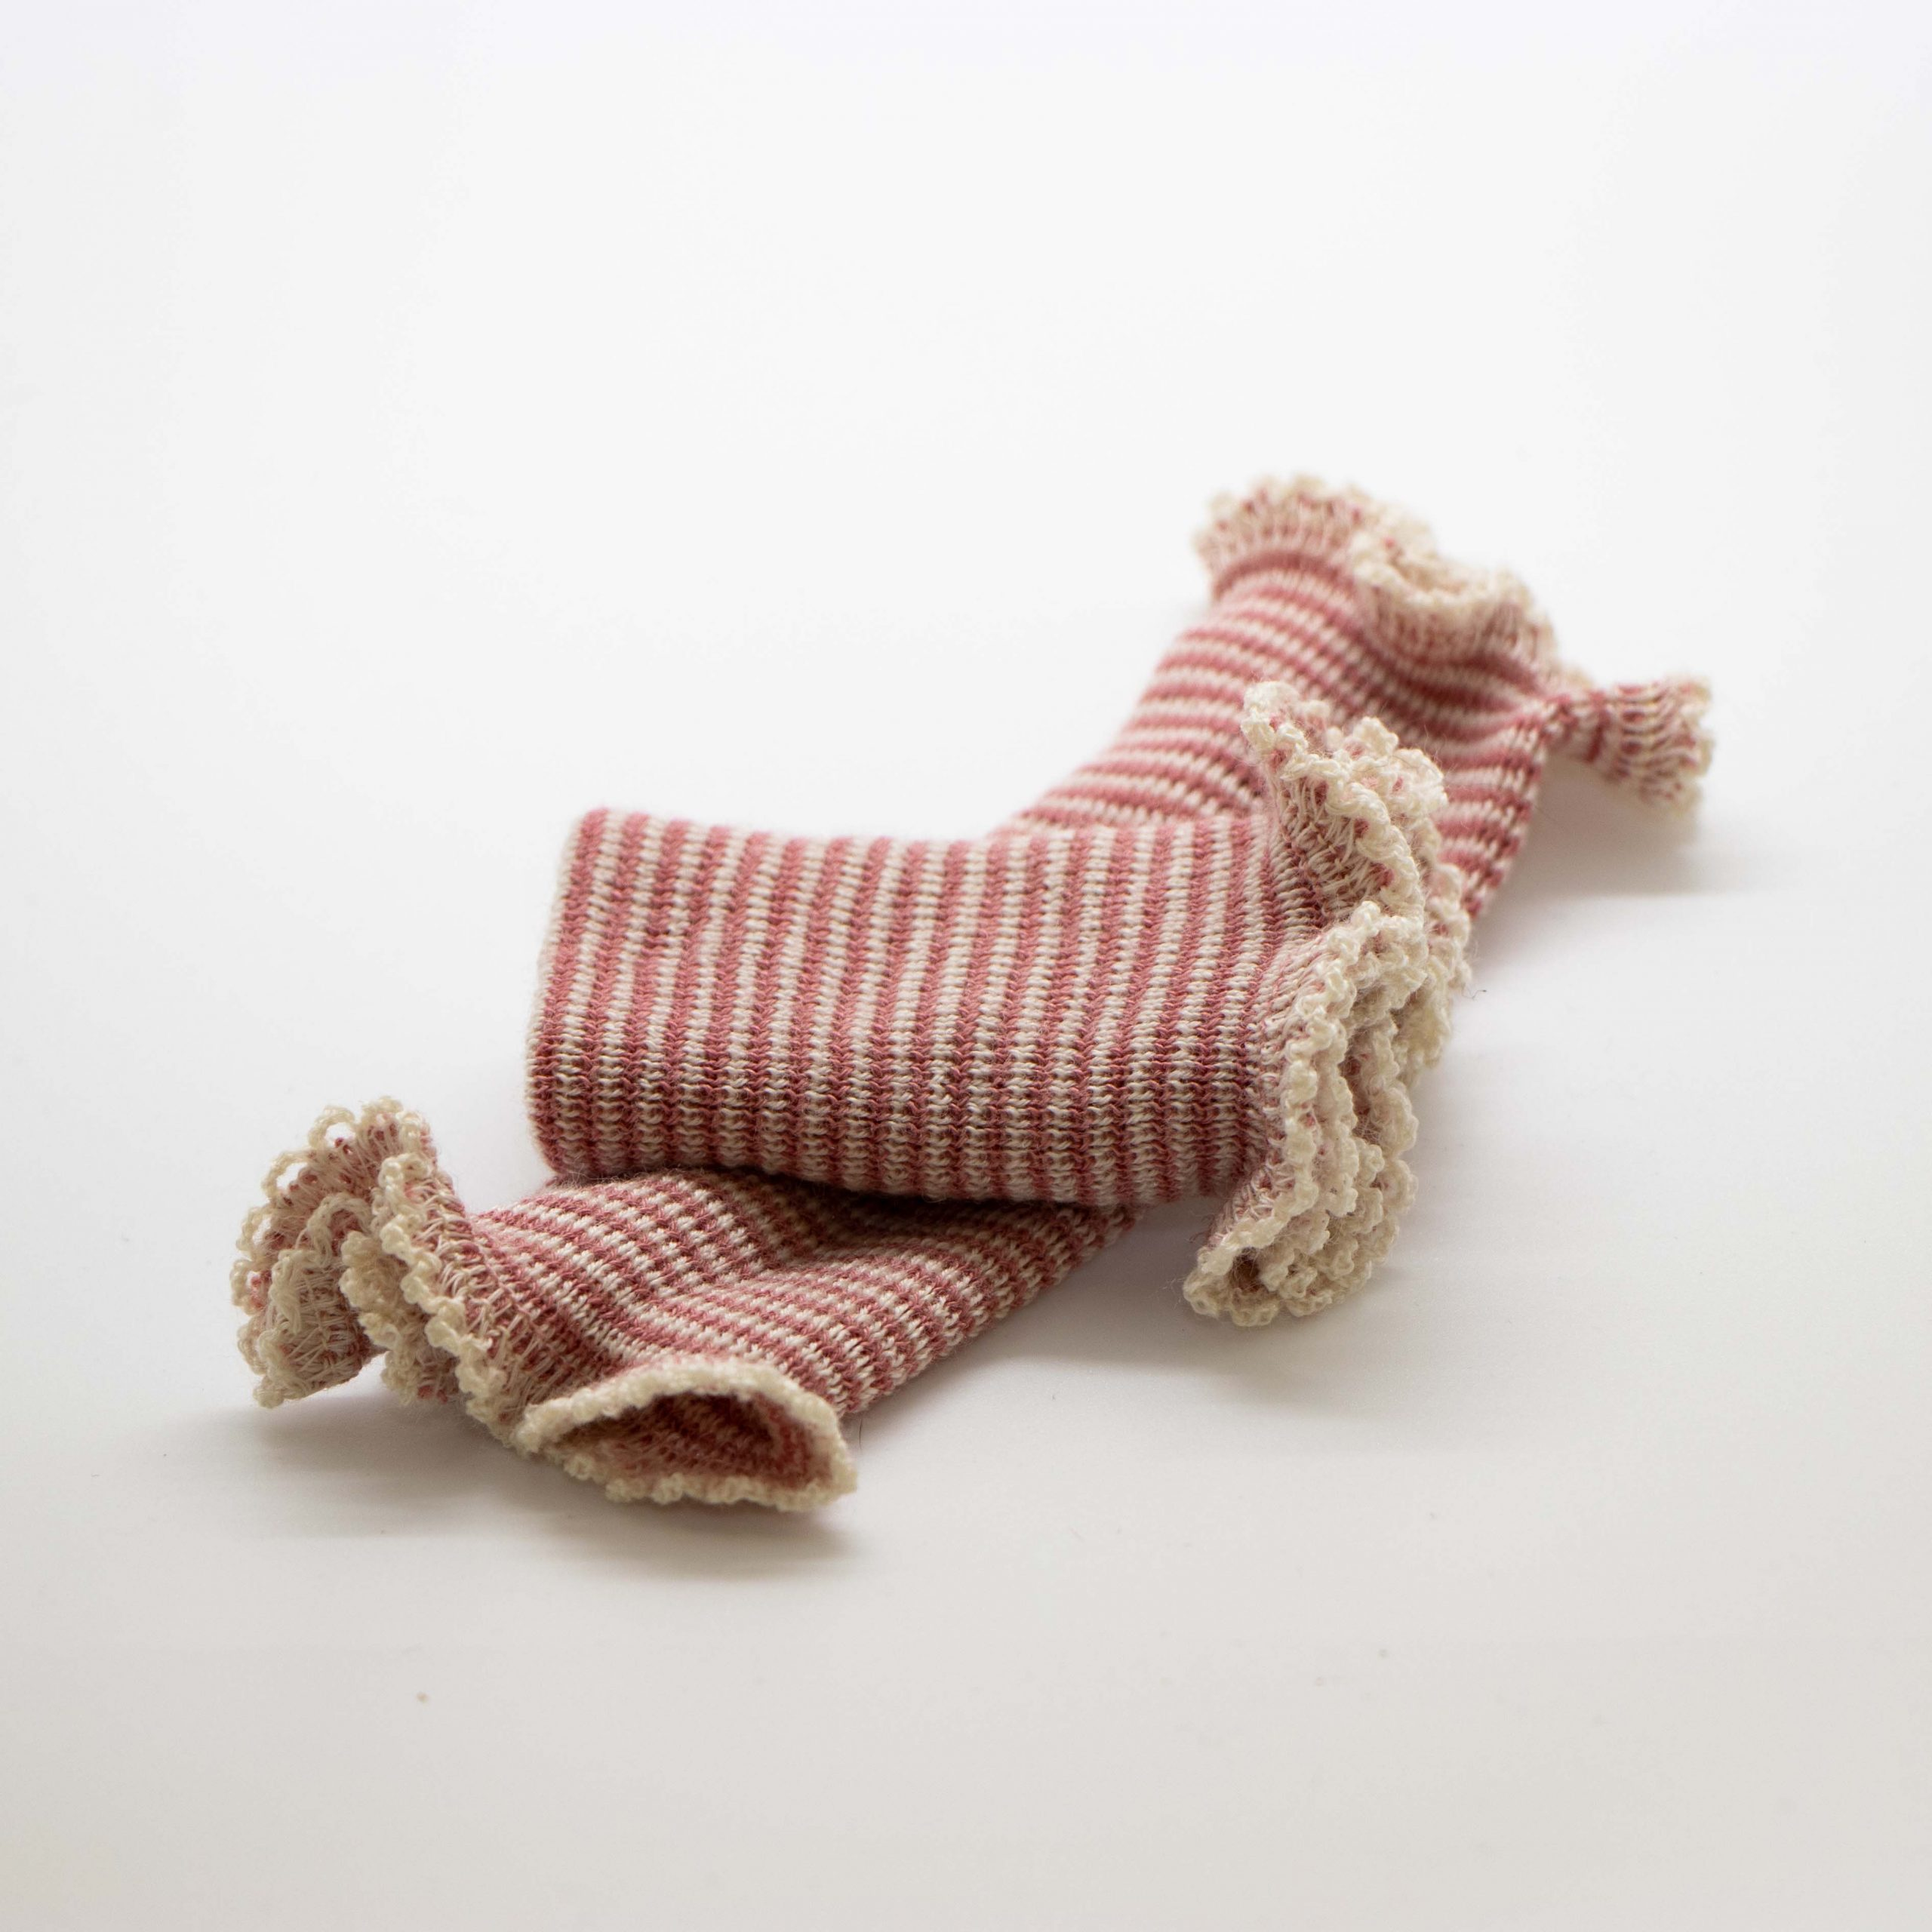 red and white striped wool wristlet warmer